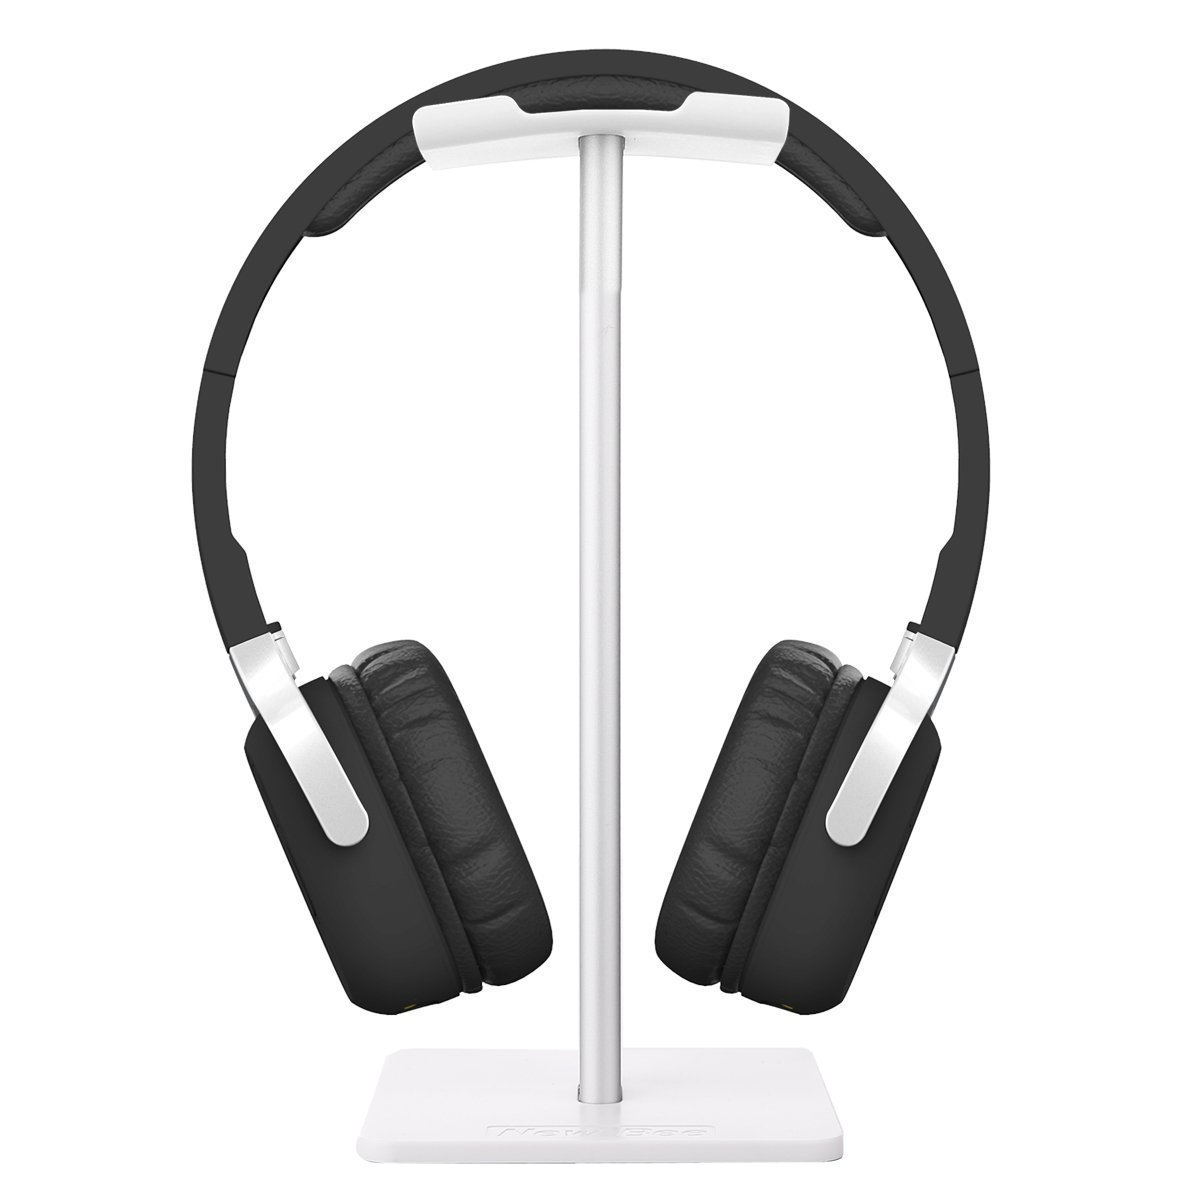 Headphone Stand Headset Holder New Bee Earphone Stand with Aluminum Supporting Bar Flexible Headrest ABS Solid Base for All Headphones Size - Silver CA-E6GH-SLIVER